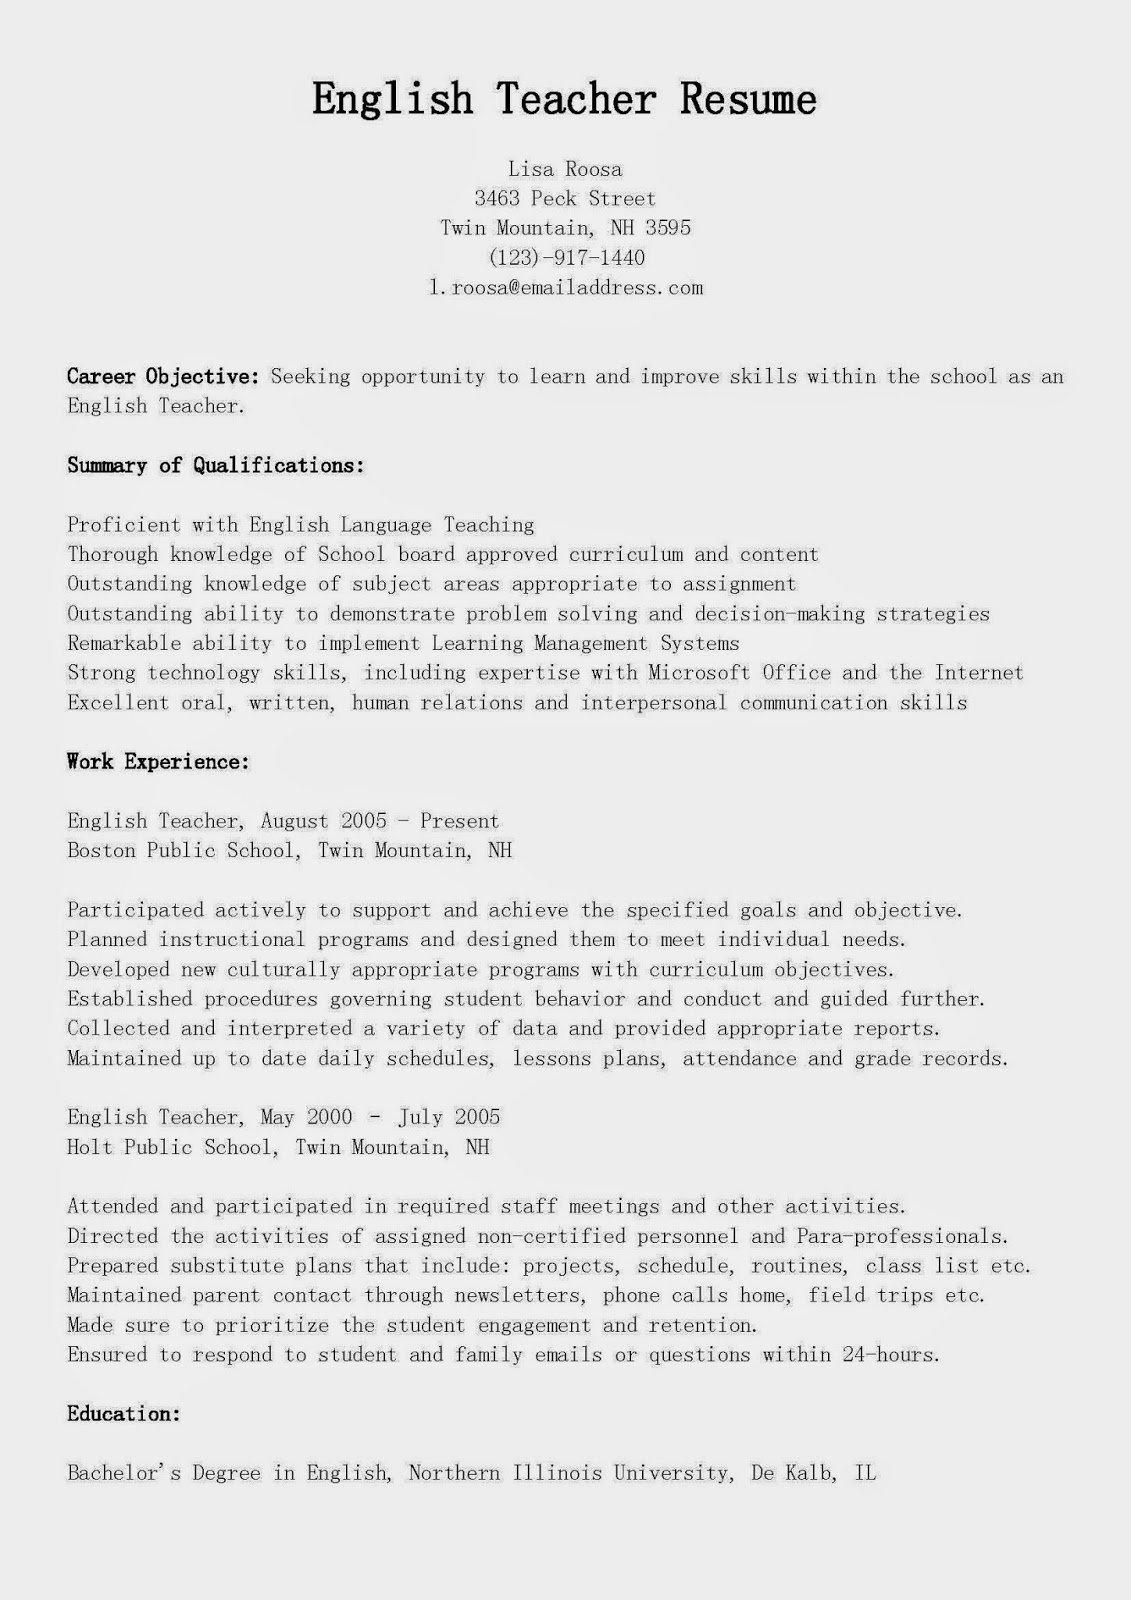 resume samples  english teacher resume sample